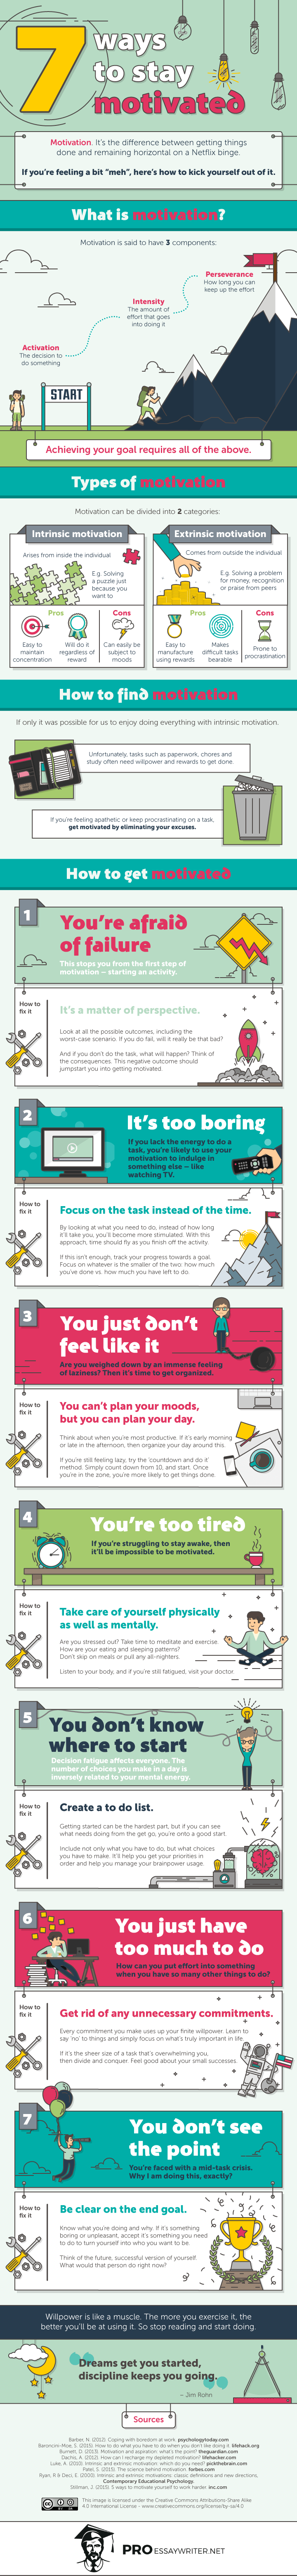 7 Ways to Stay Motivated Infographic